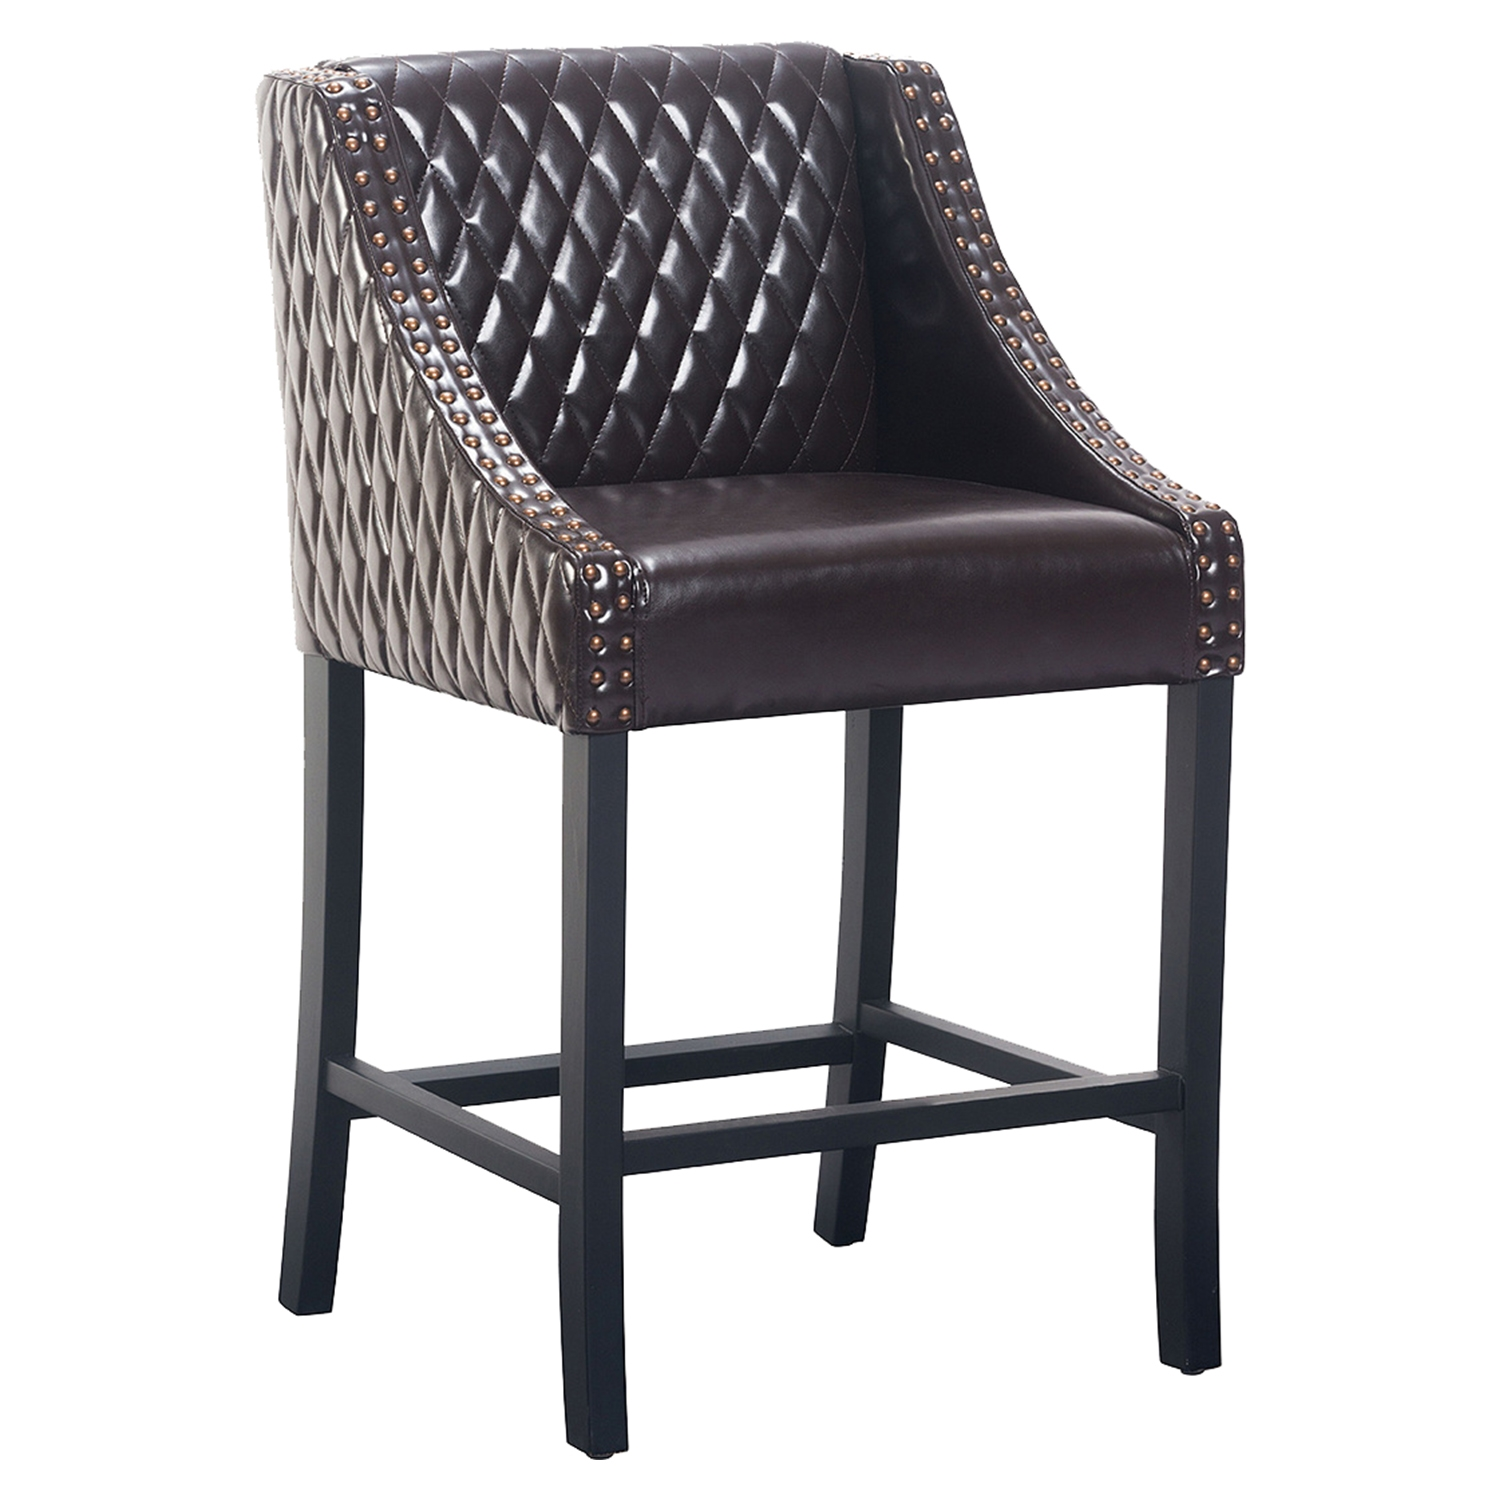 Santa Ana Counter Chair - Brown - ZM-98606